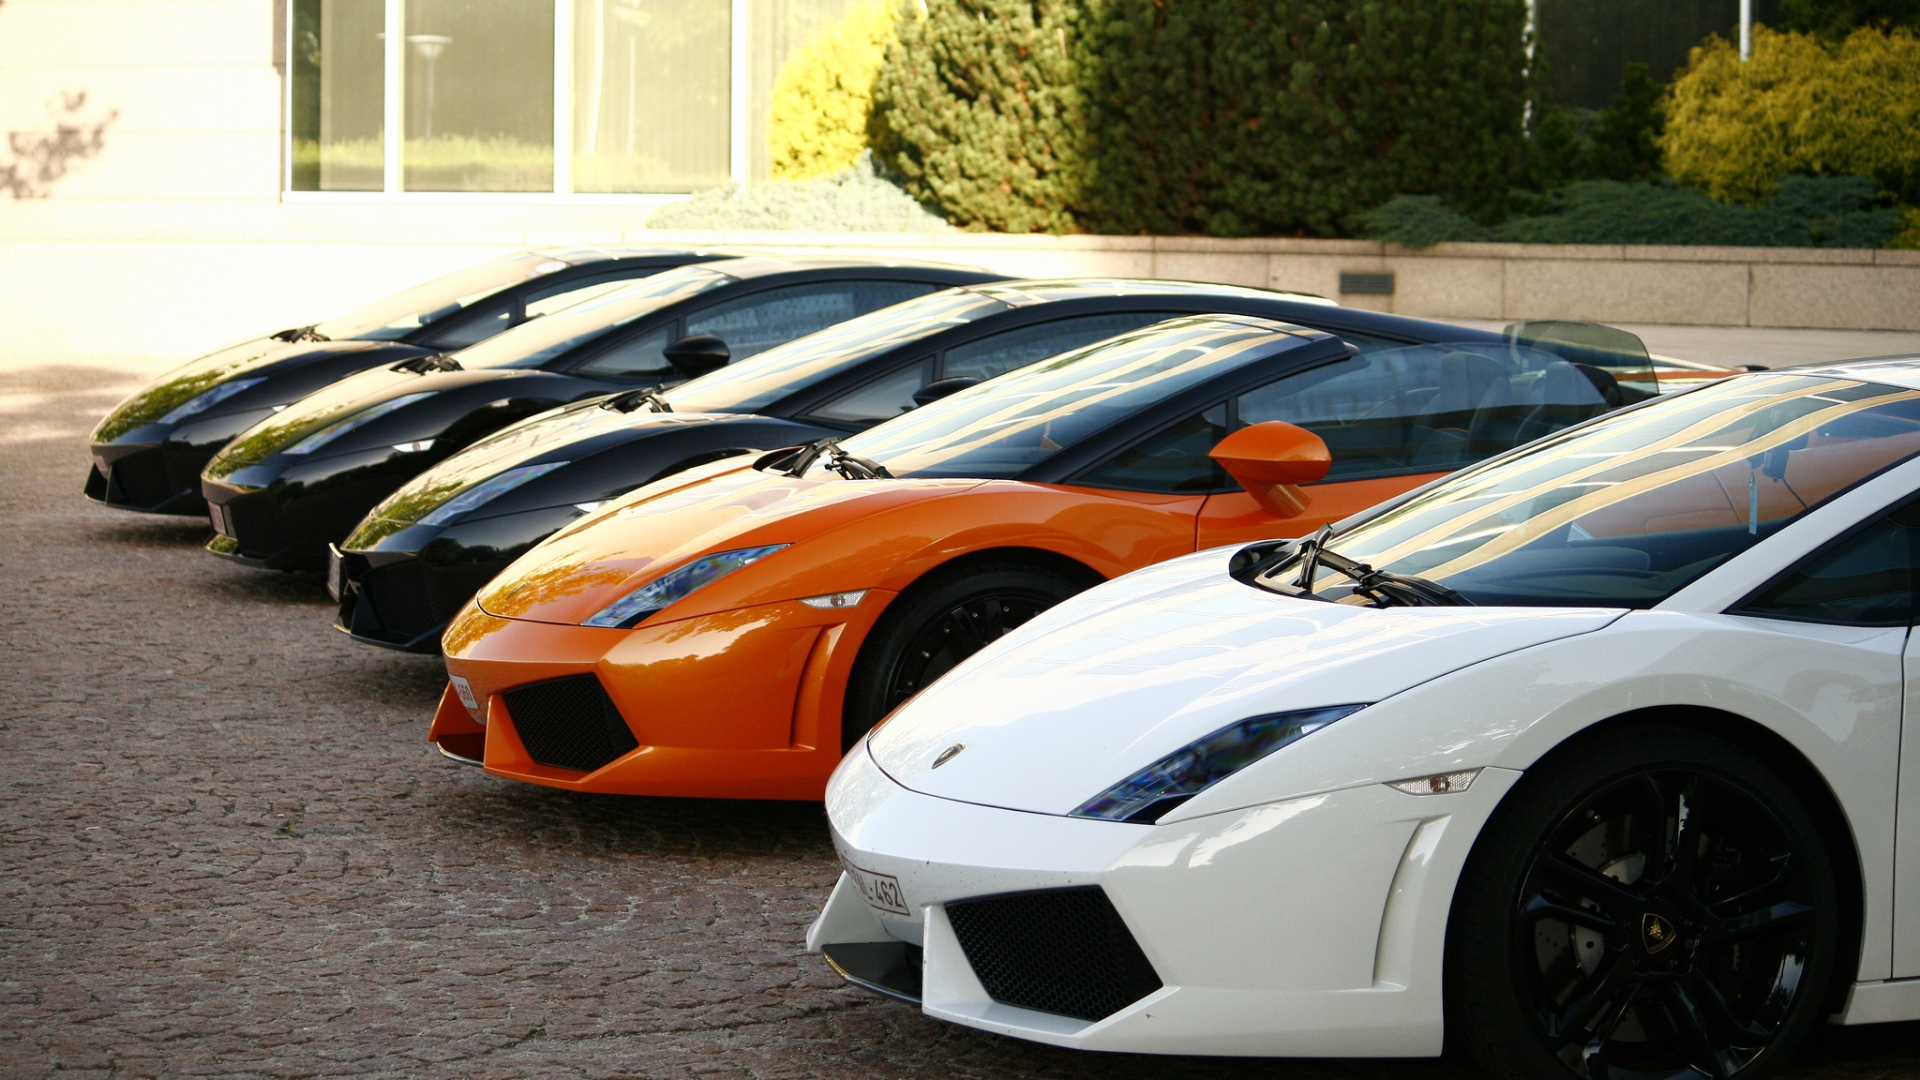 Gallardo HD Cars 4k Wallpapers Images Backgrounds Photos And